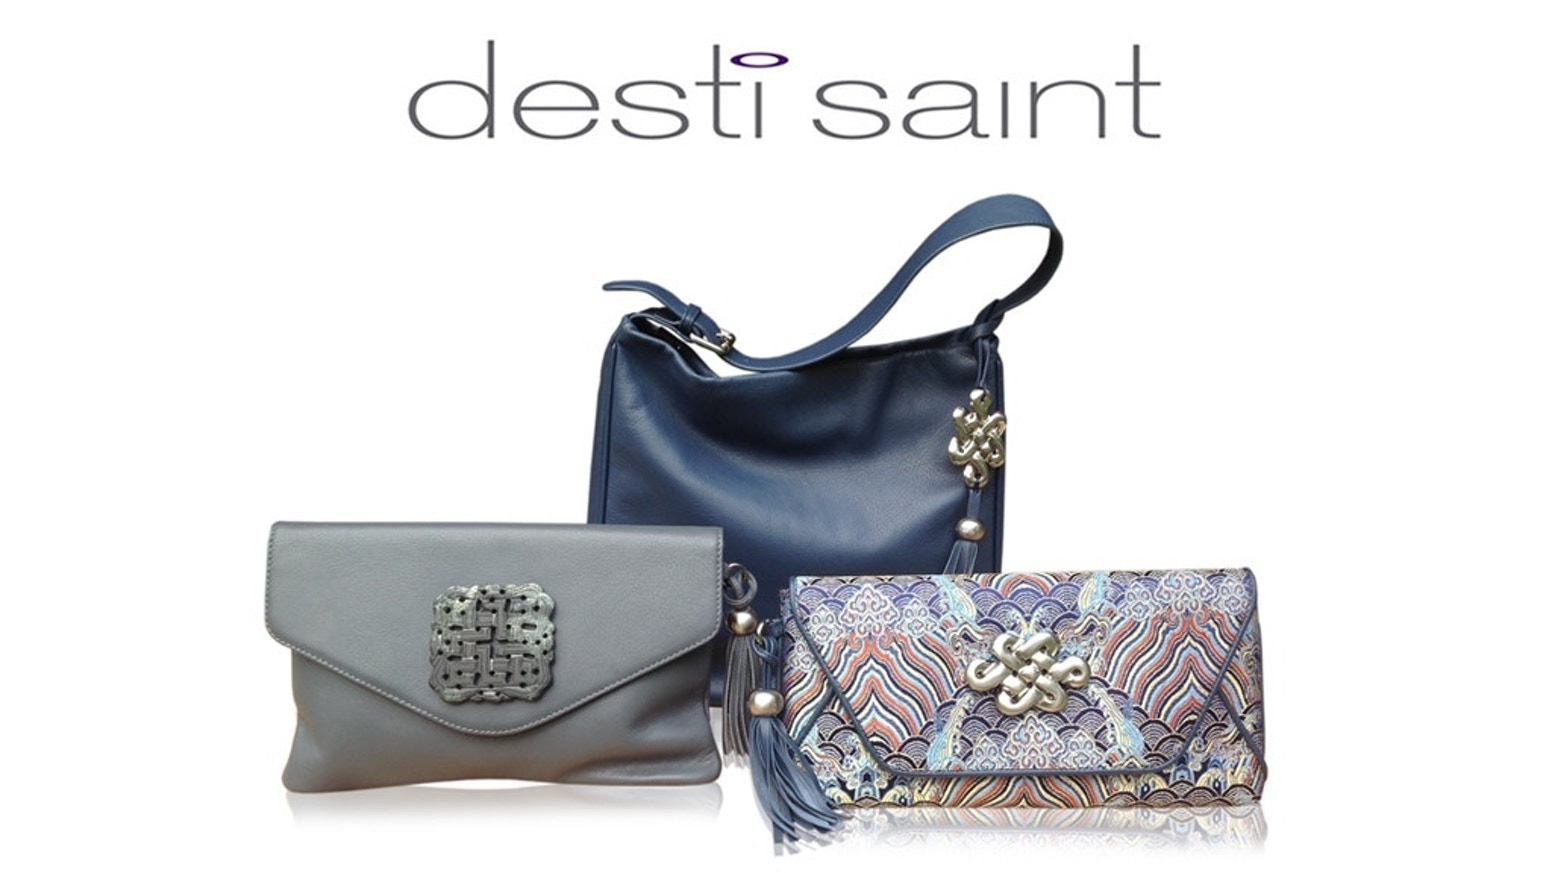 Desti Saint - Luxury Designer Handbags from Singapore